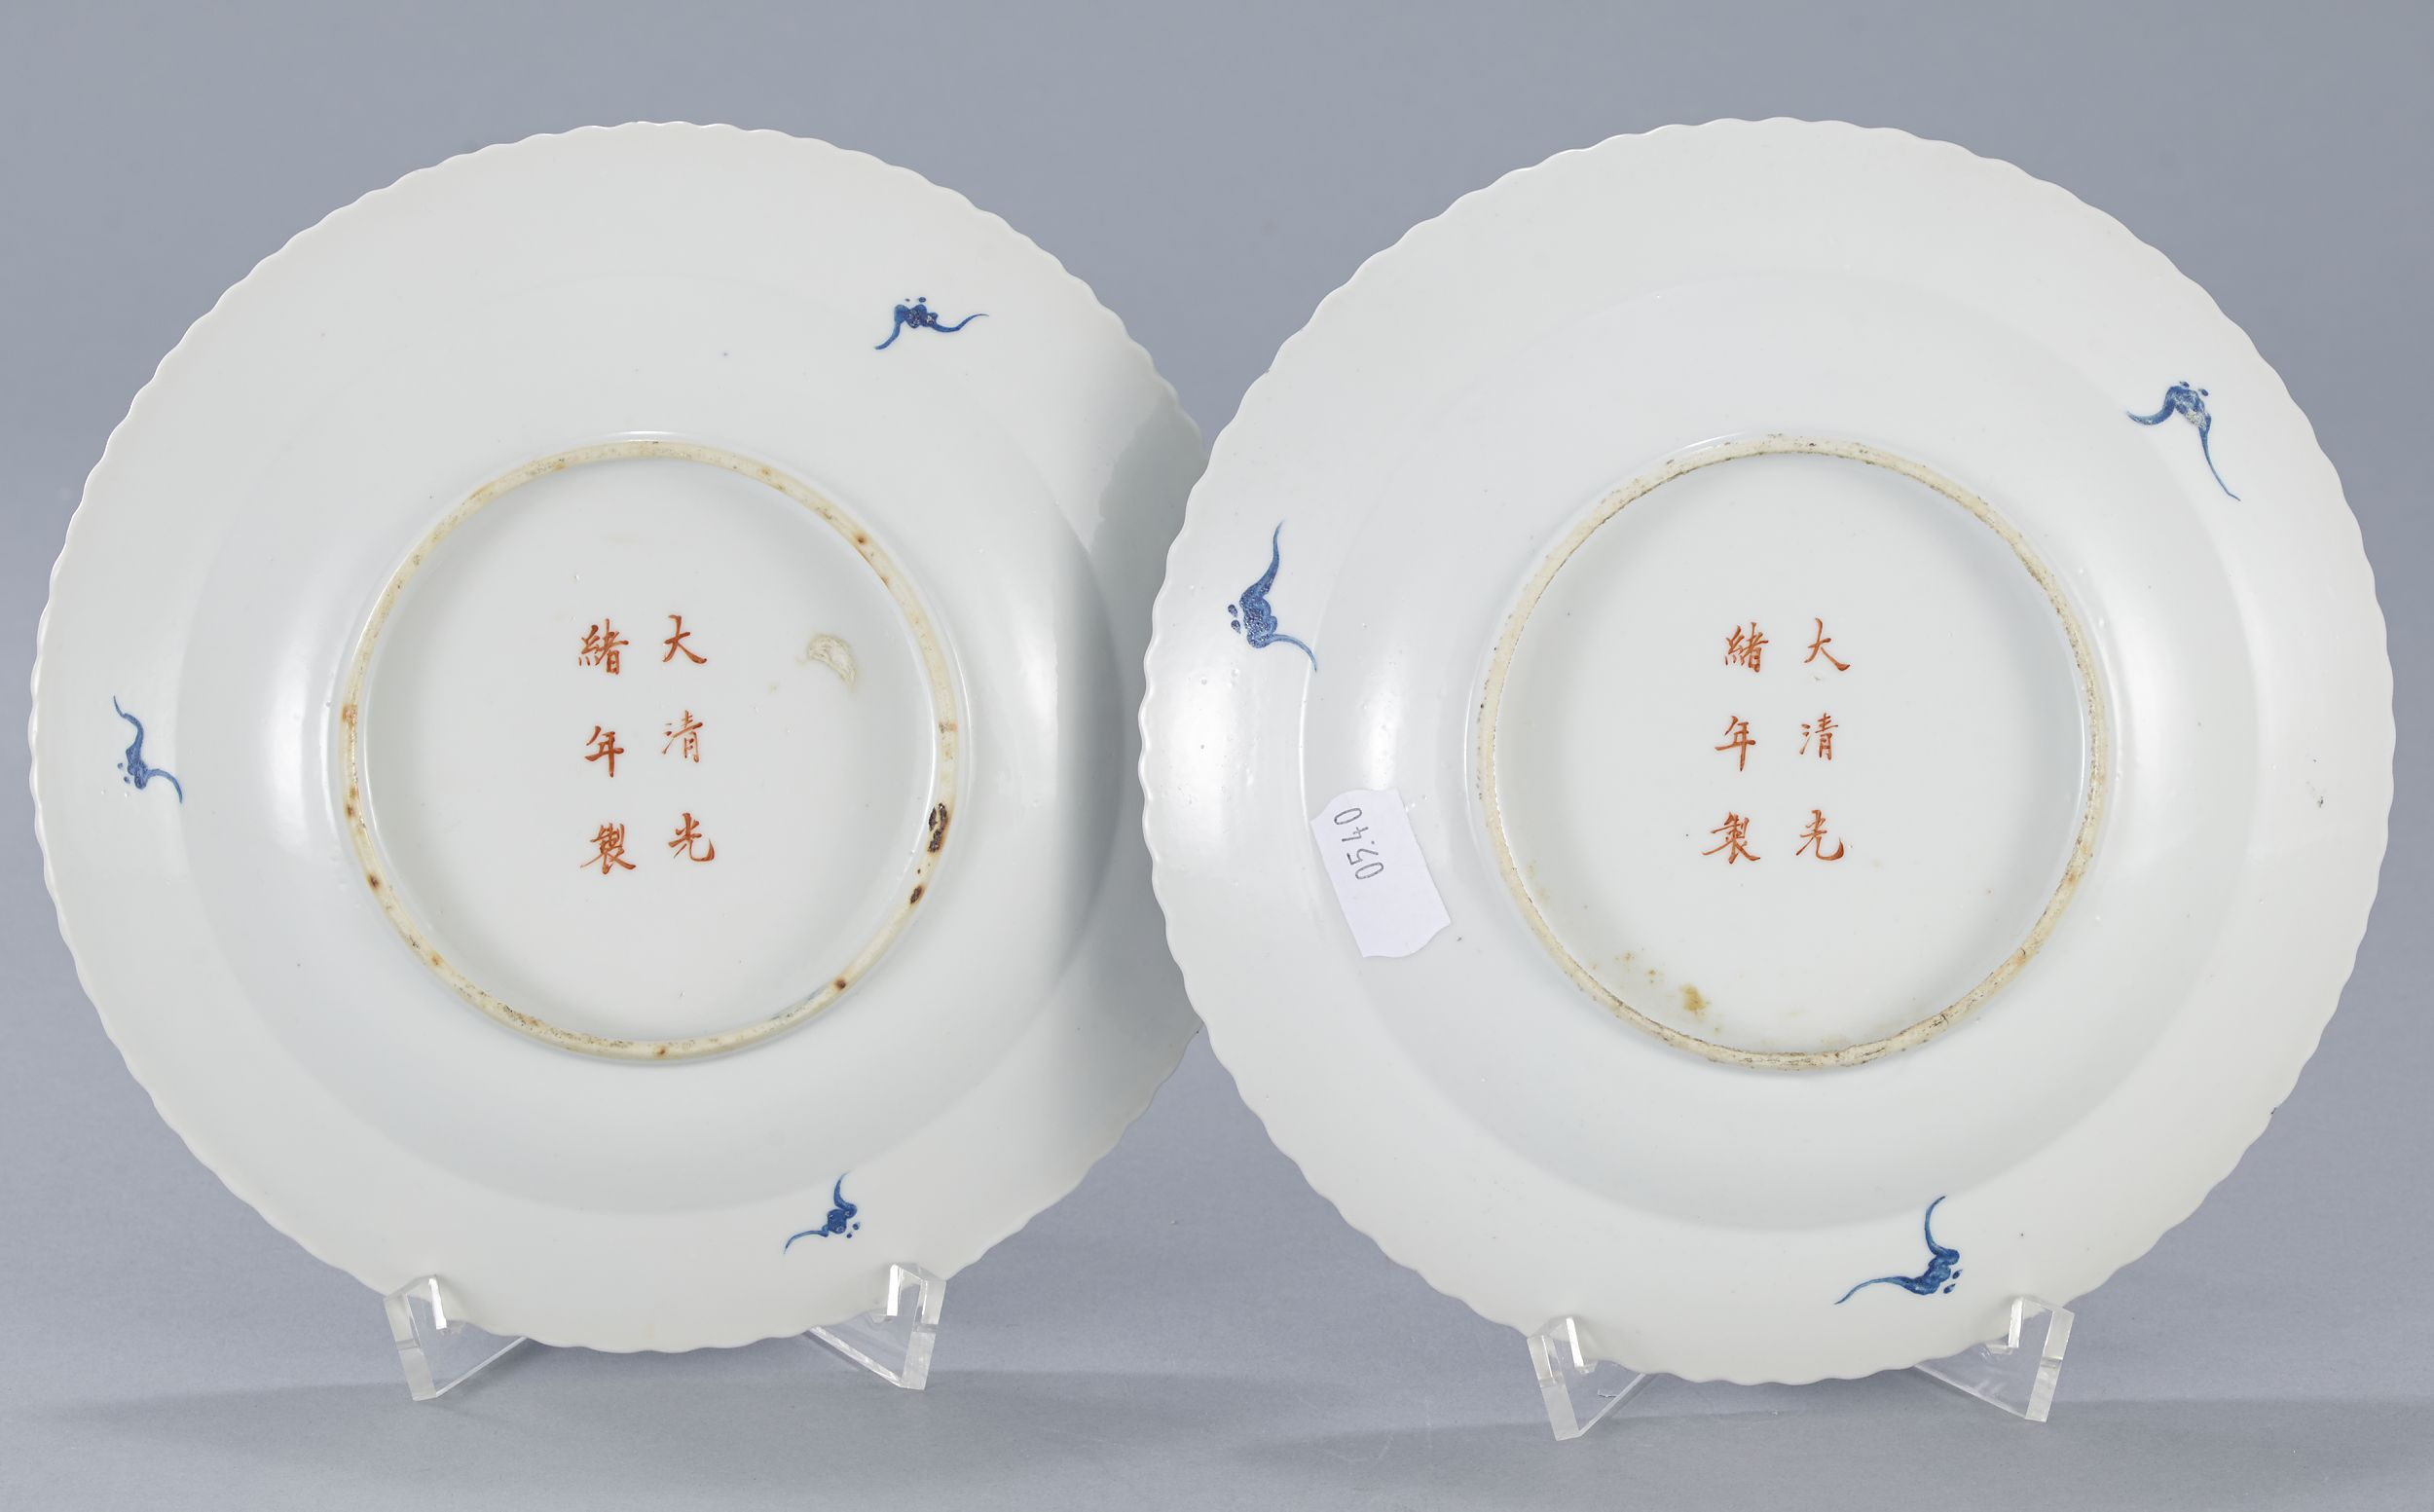 A Pair of Iron-Red and Blue Bat Plates